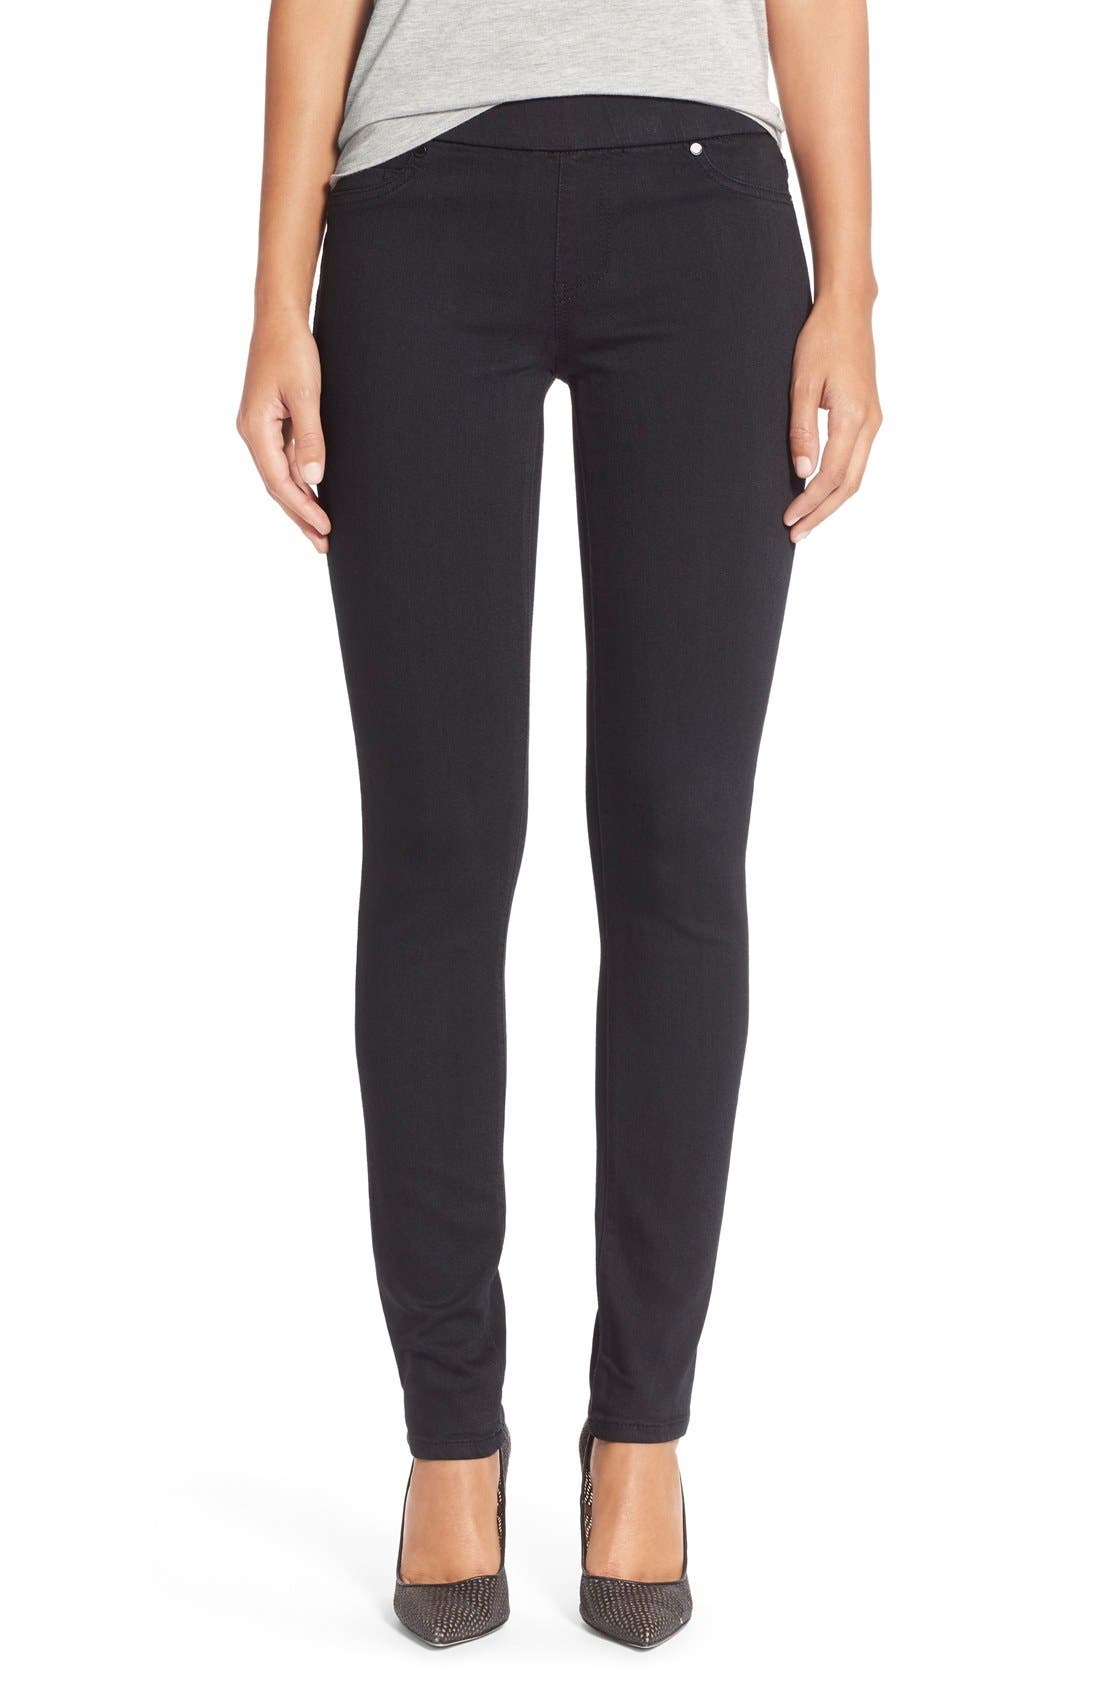 Liverpool Jeans Company 'Sienna' Pull-On Knit Denim Leggings (Petite)